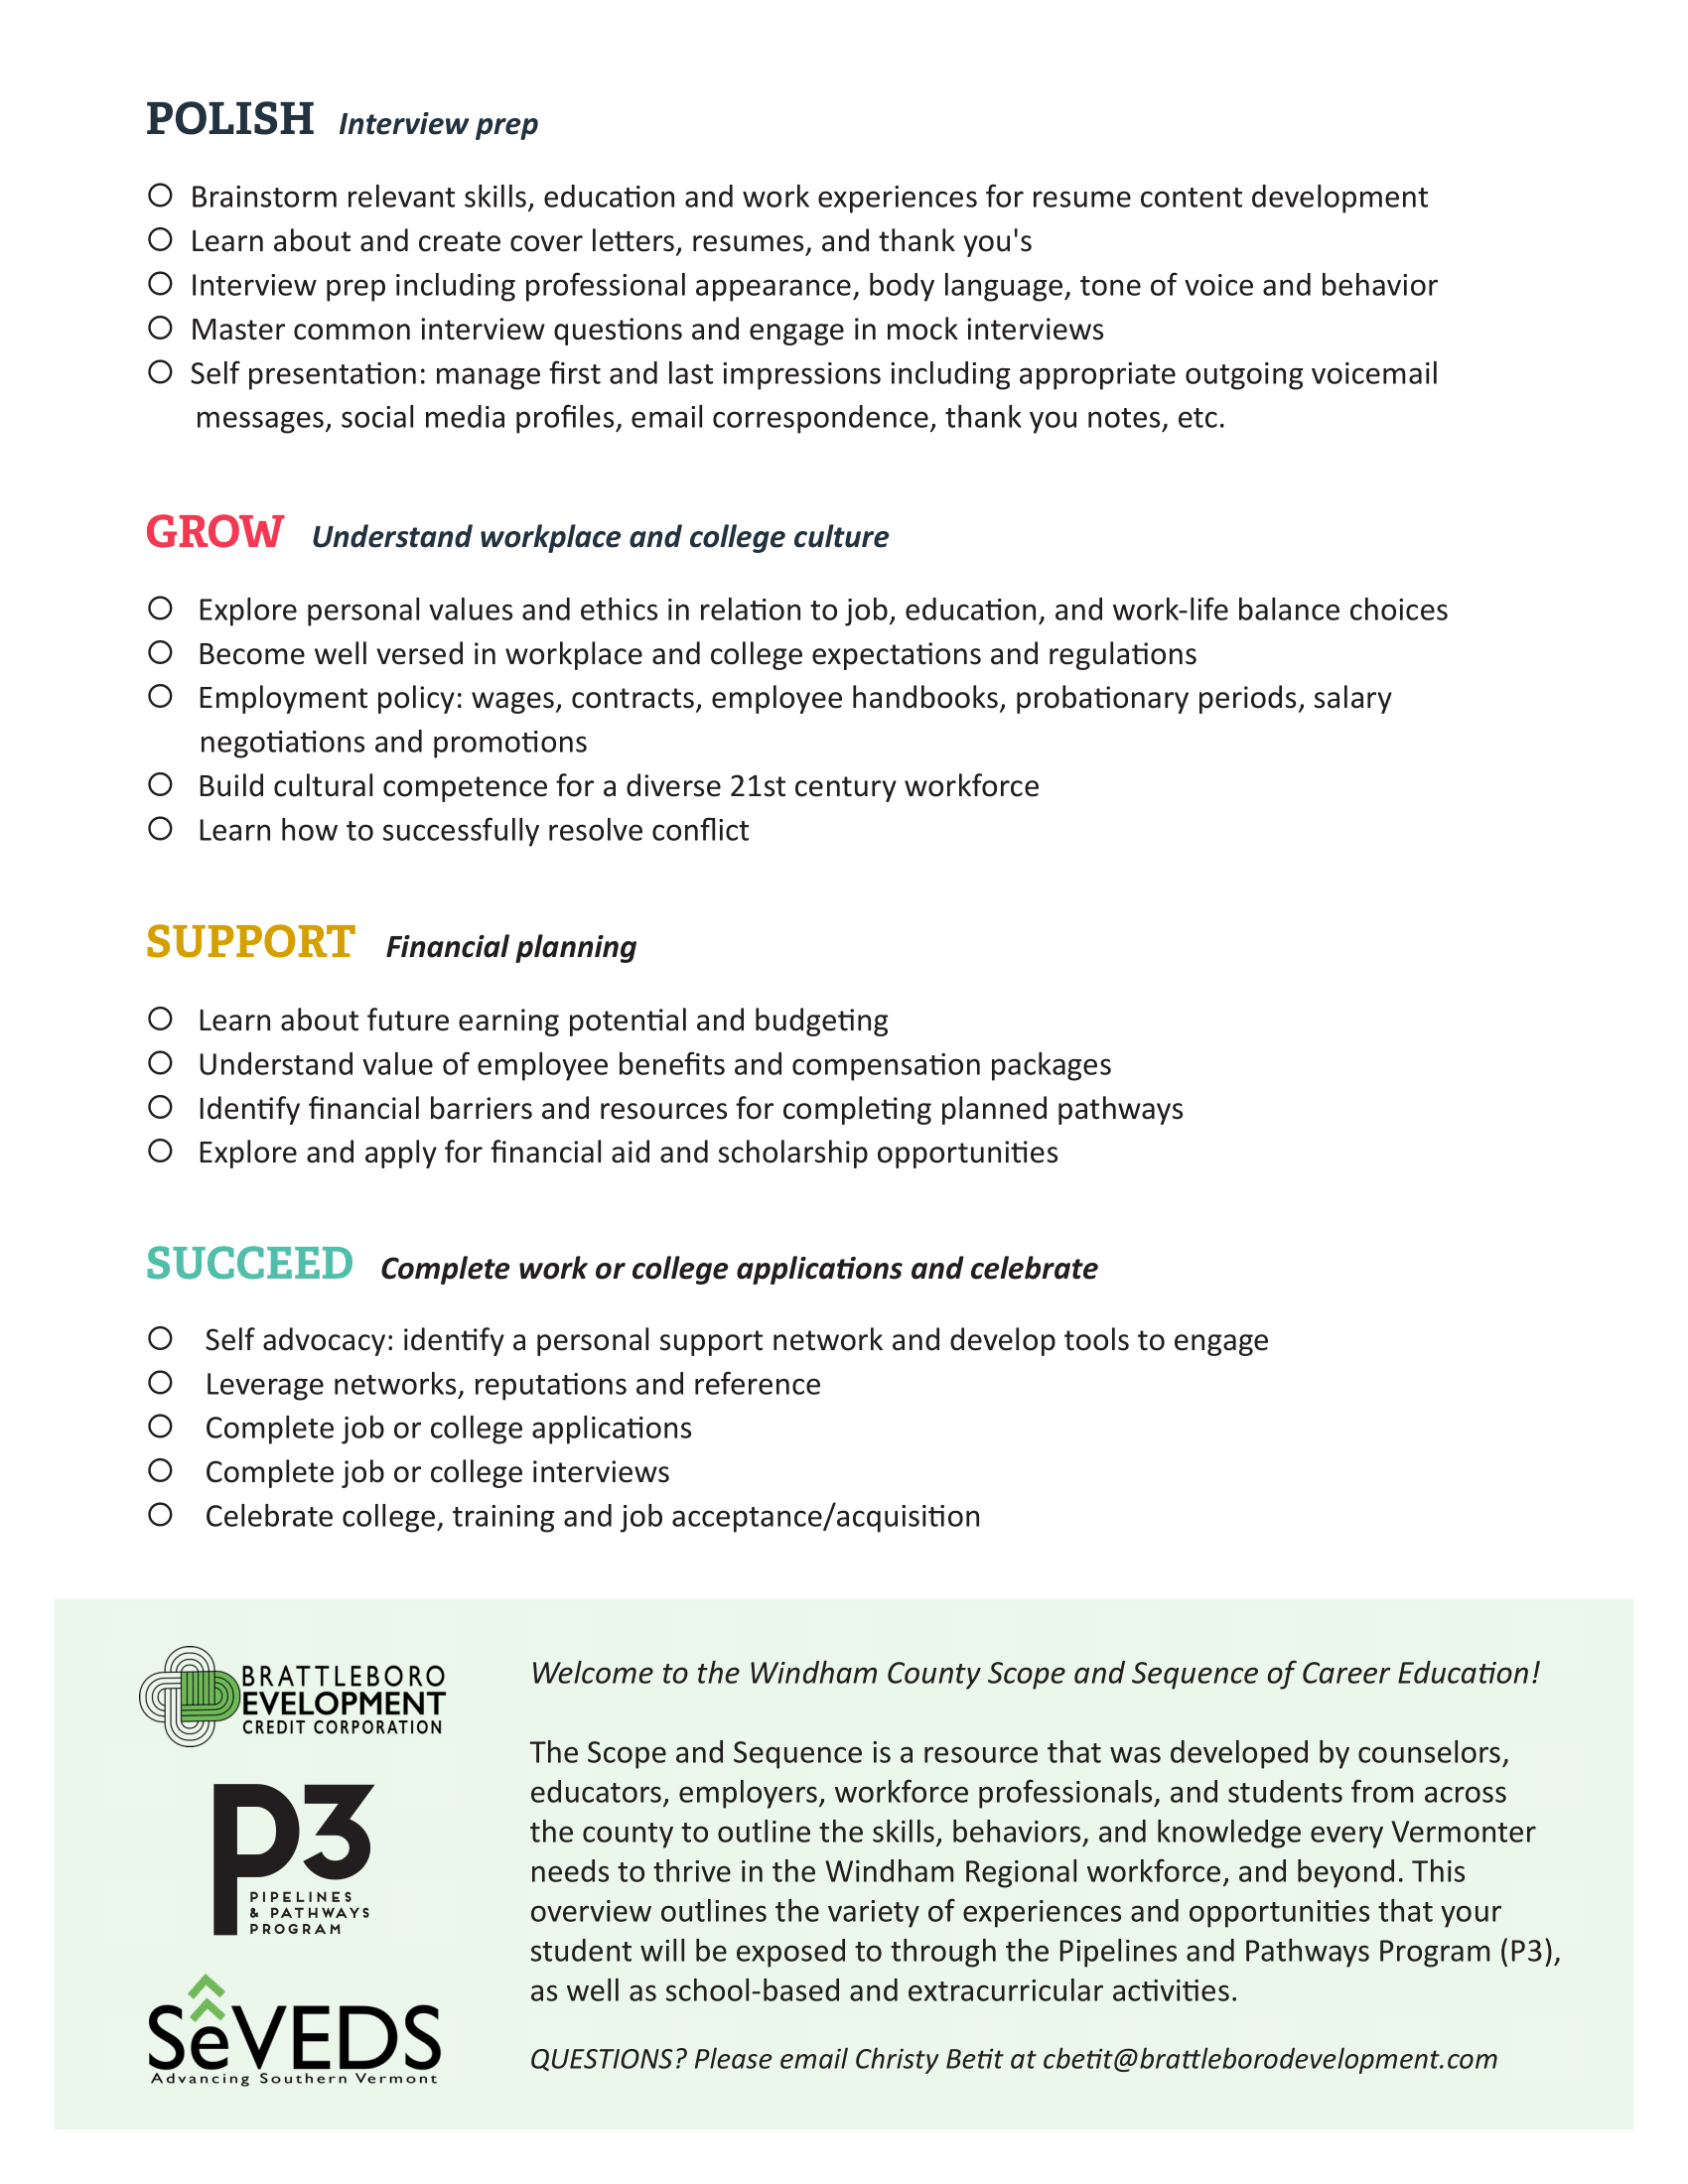 The P3 8 Steps to Your Future Success Educator Worksheet